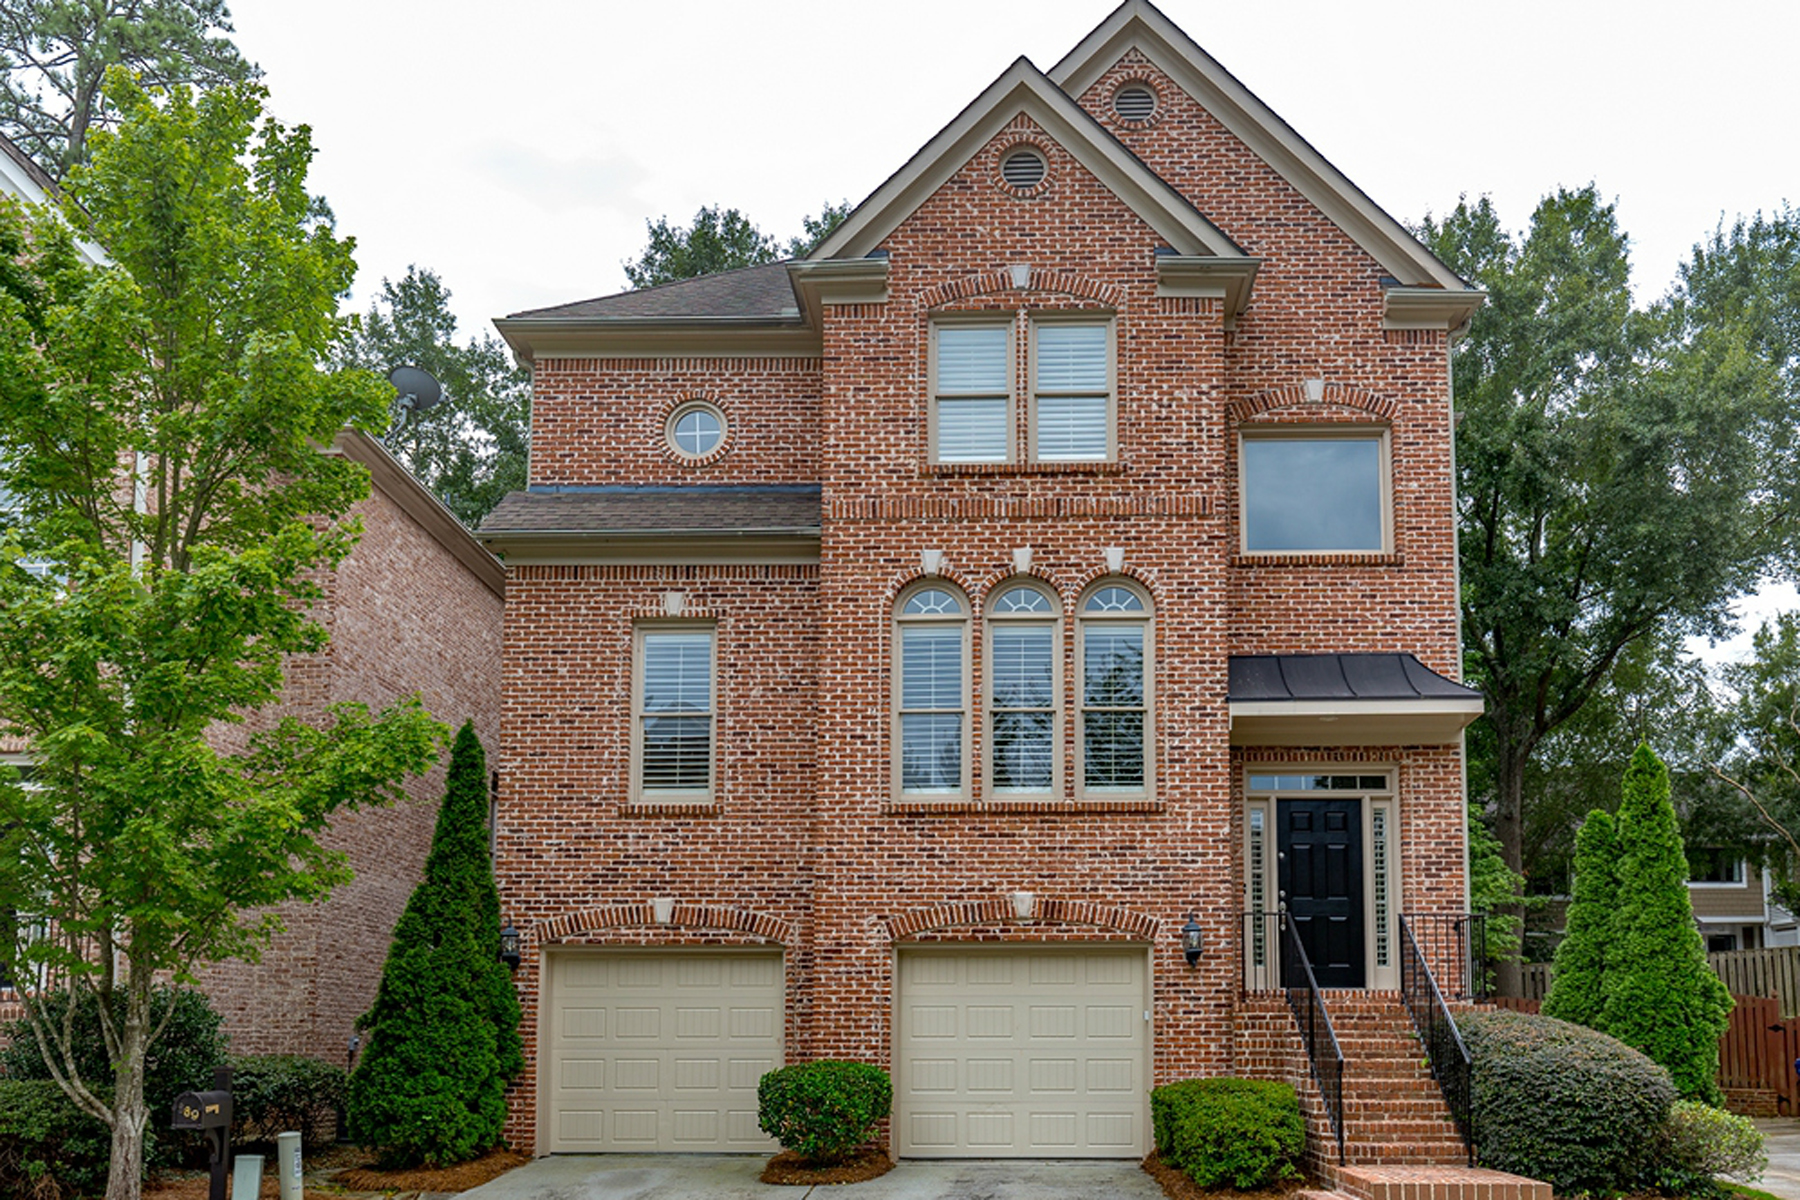 Single Family Home for Sale at Three Levels Of Living In Buckhead 889 Lenox Ct Atlanta, Georgia, 30324 United States